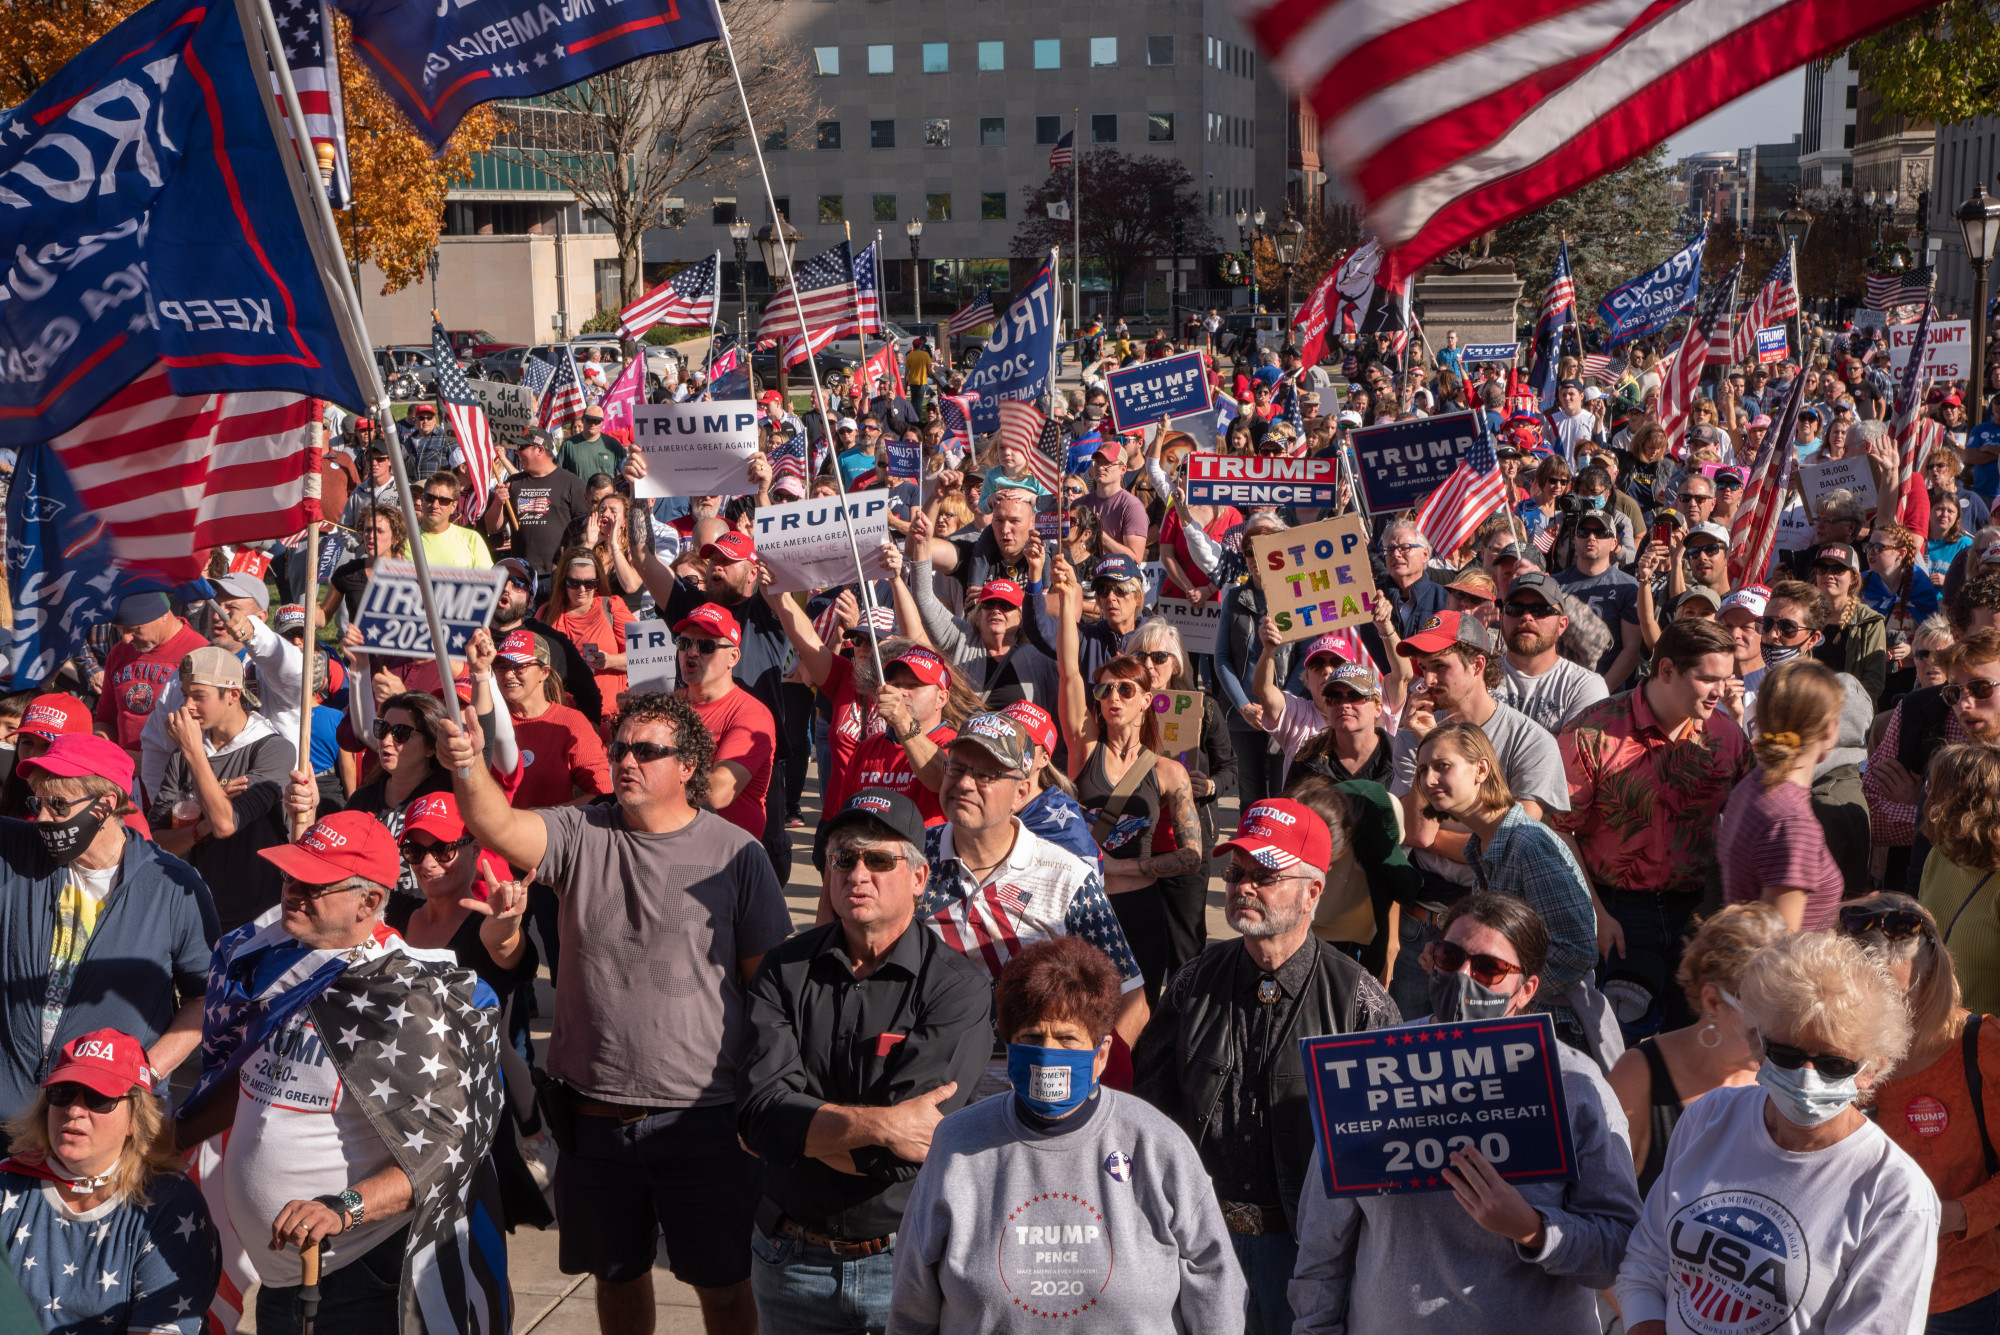 Trump supporters gather at Capitol following Biden's projected win - The State News